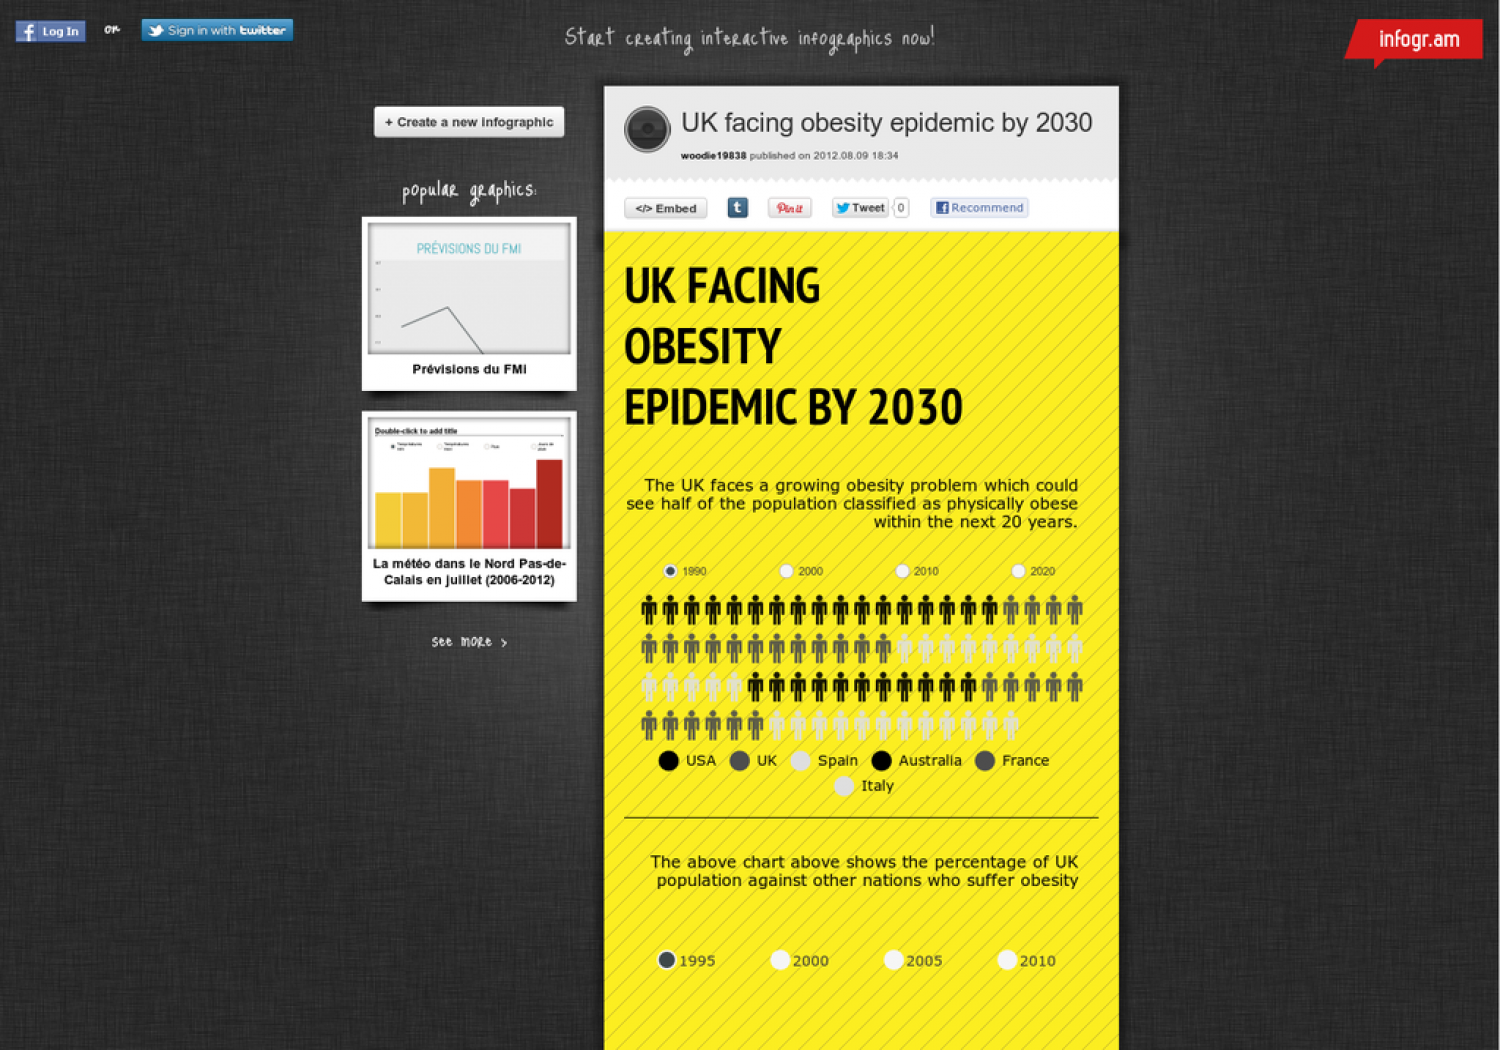 UK FACING OBESITY EPIDEMIC BY 2030 Infographic